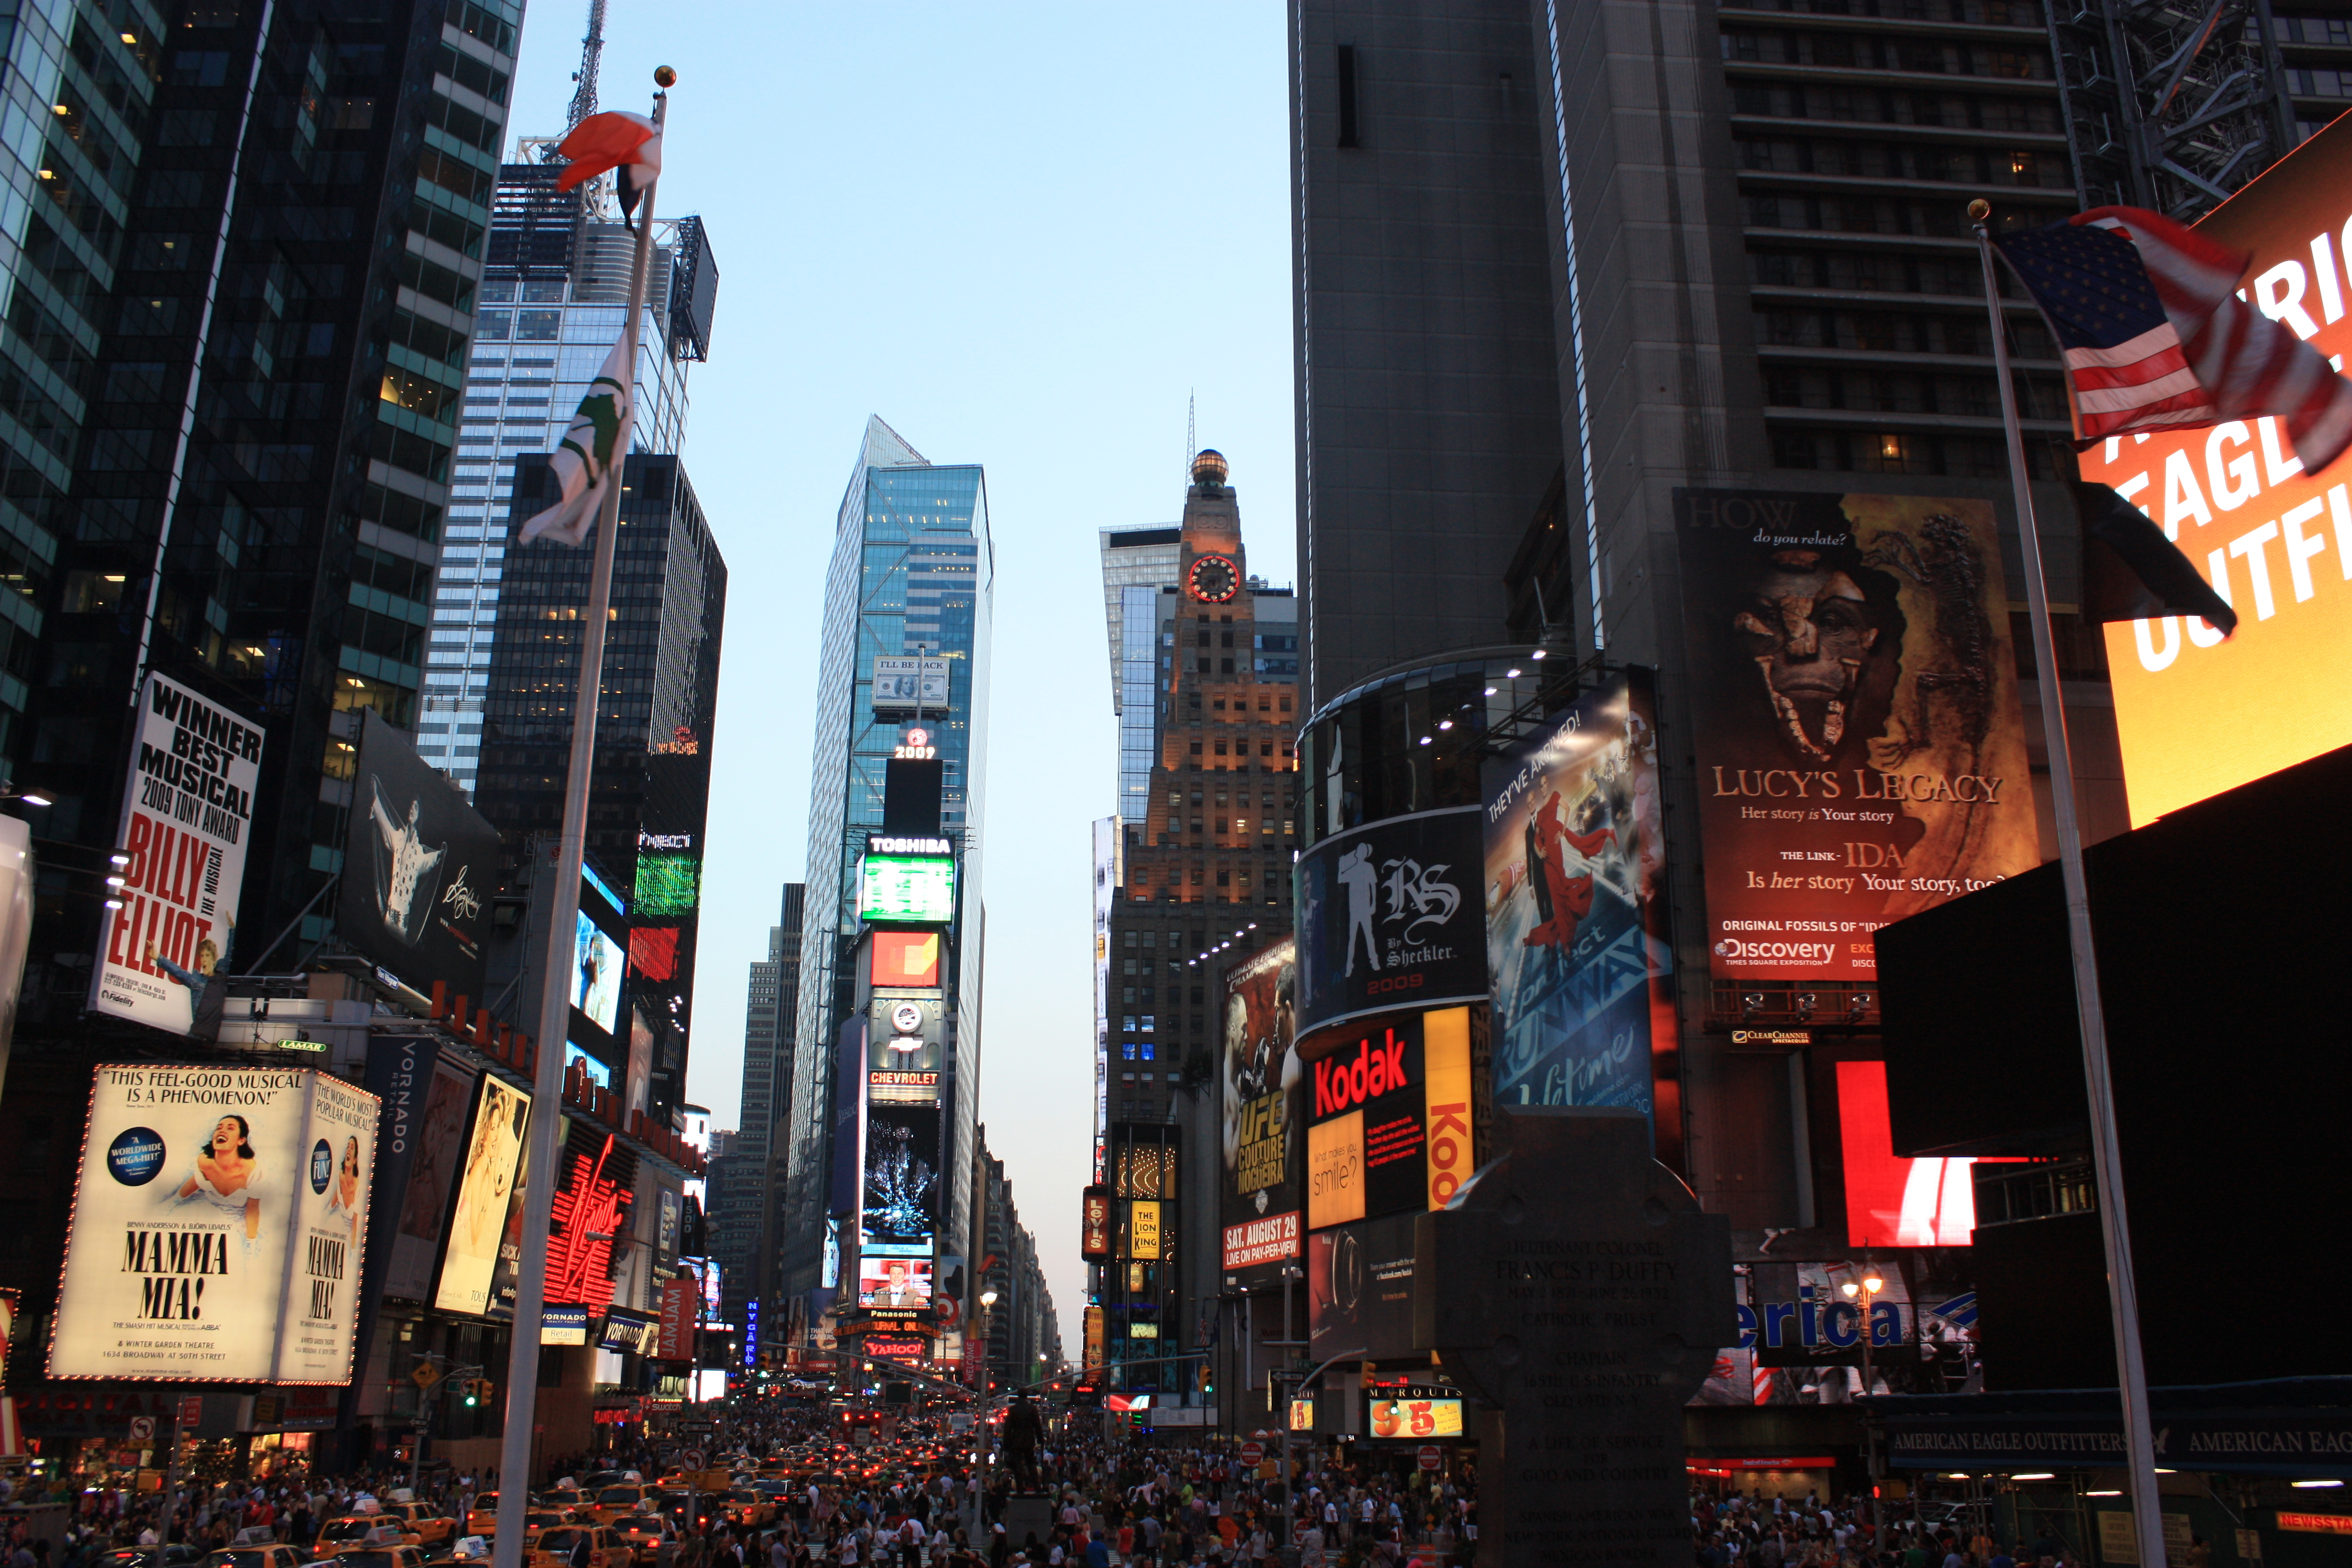 File:Times Square Overview.JPG - Wikipedia